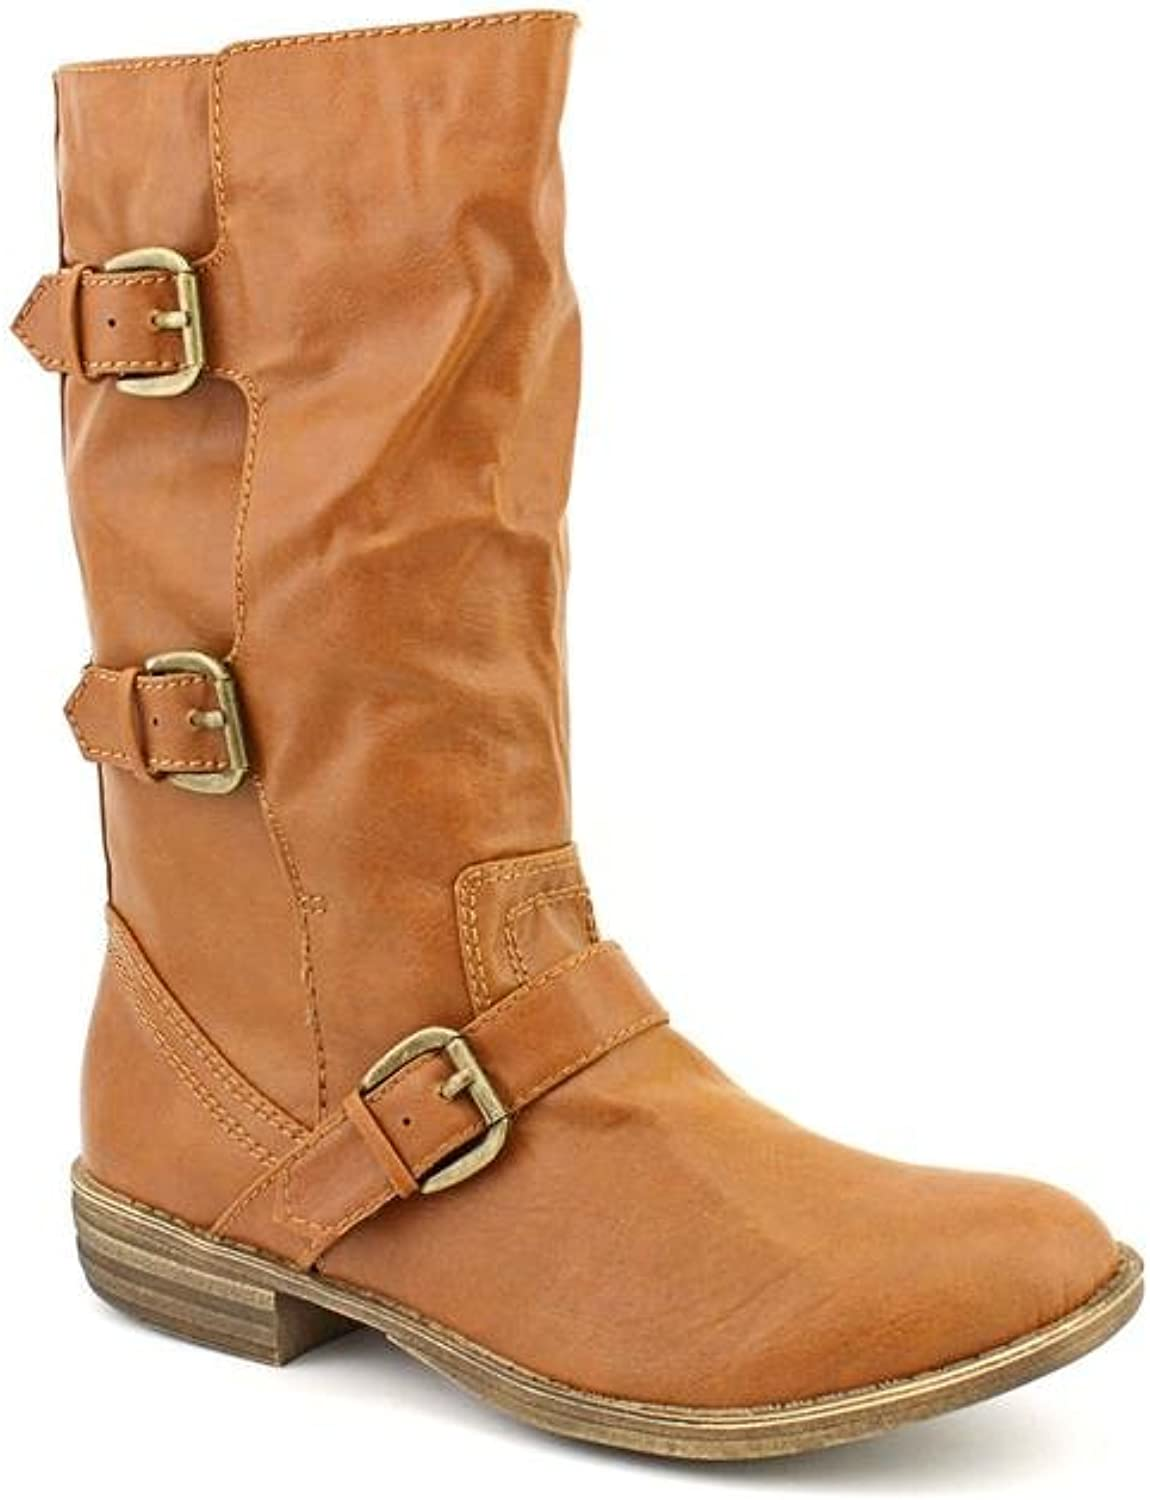 American Rag Womens Kandic Almond Toe Mid-Calf Fashion Boots, Brown, Size 5.5